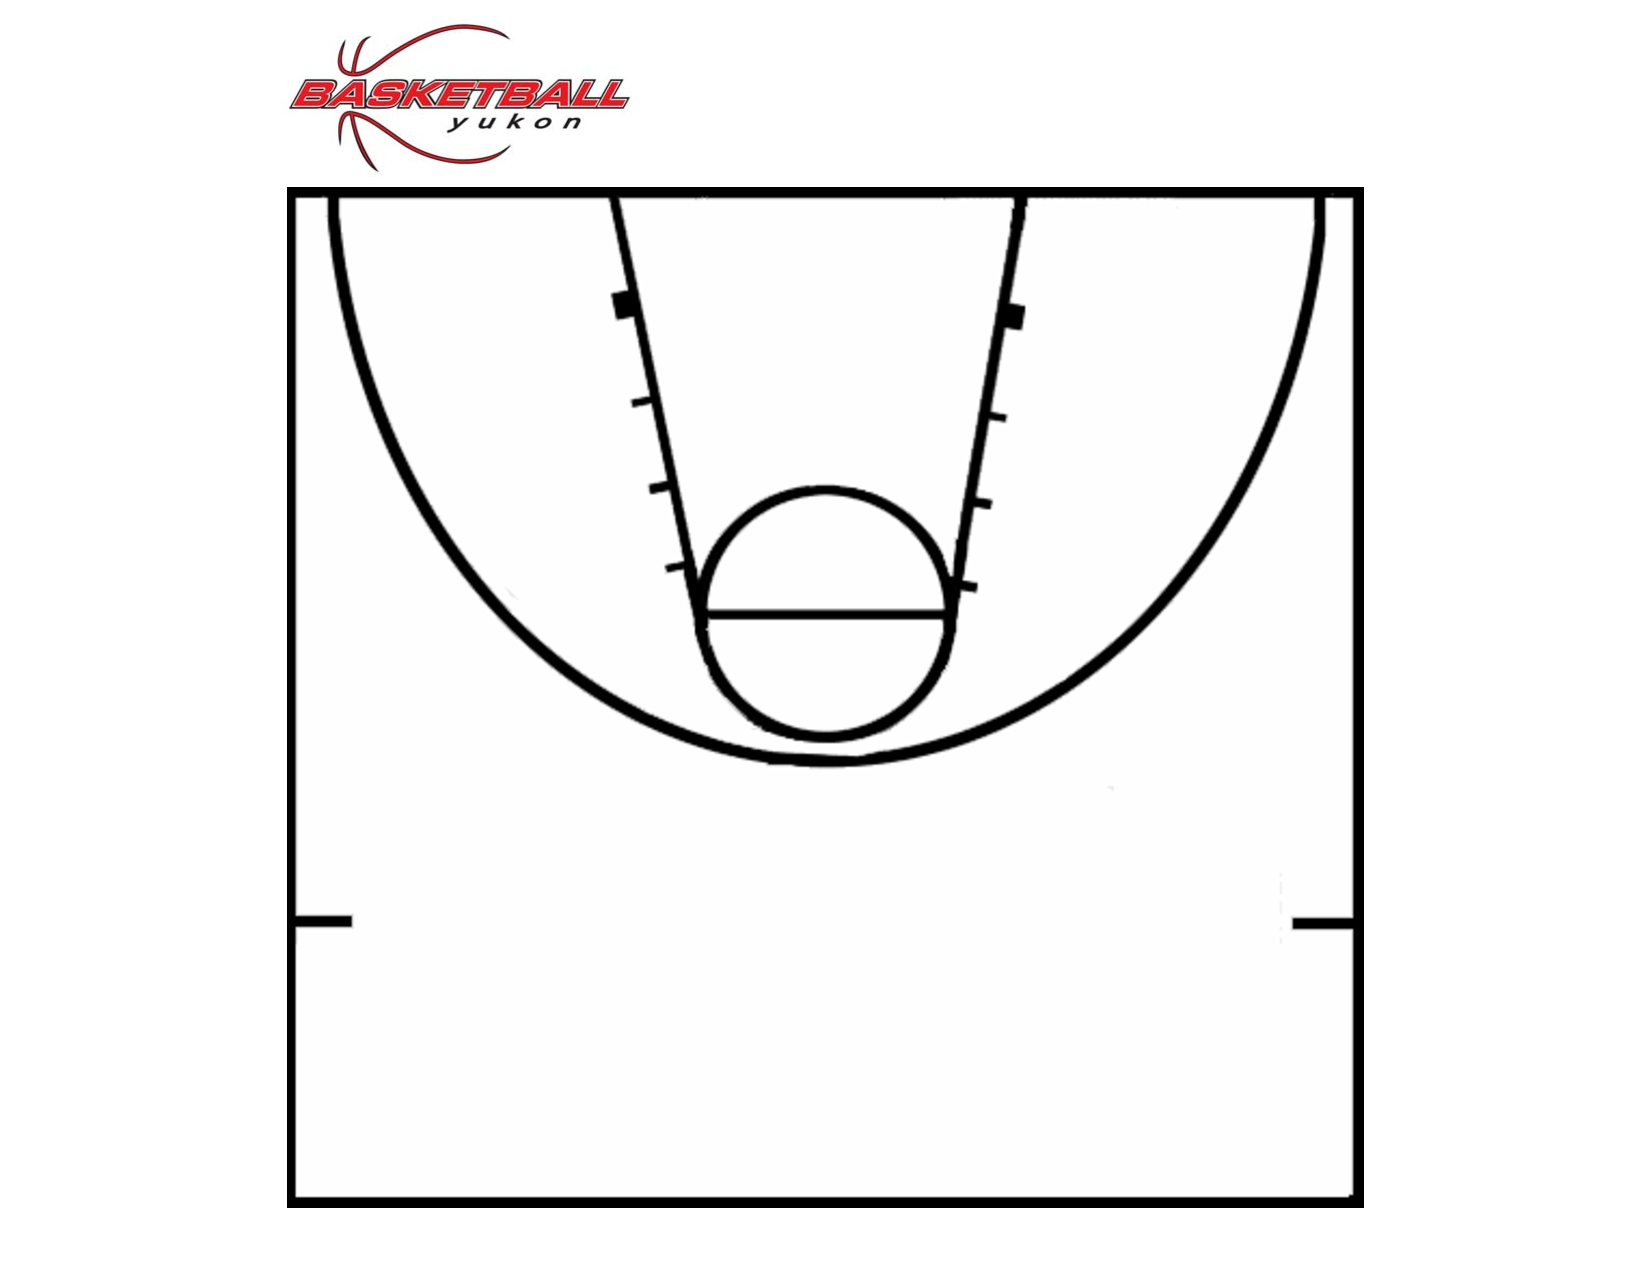 basketball half court clipart clipart panda free clipart images. Black Bedroom Furniture Sets. Home Design Ideas